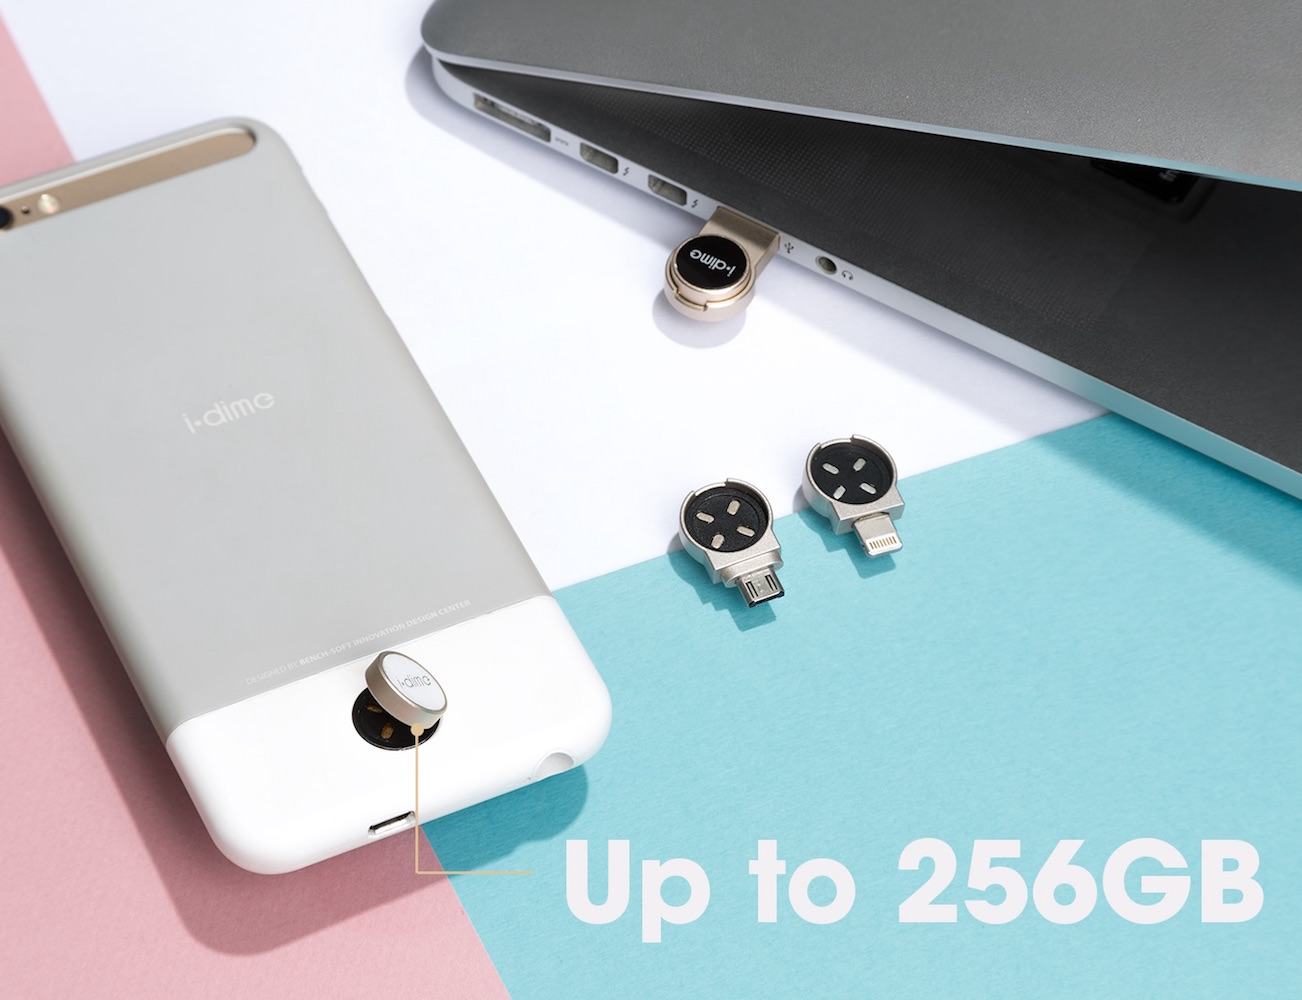 idime – First Magnetic, Dime-Sized iPhone Storage Expansion